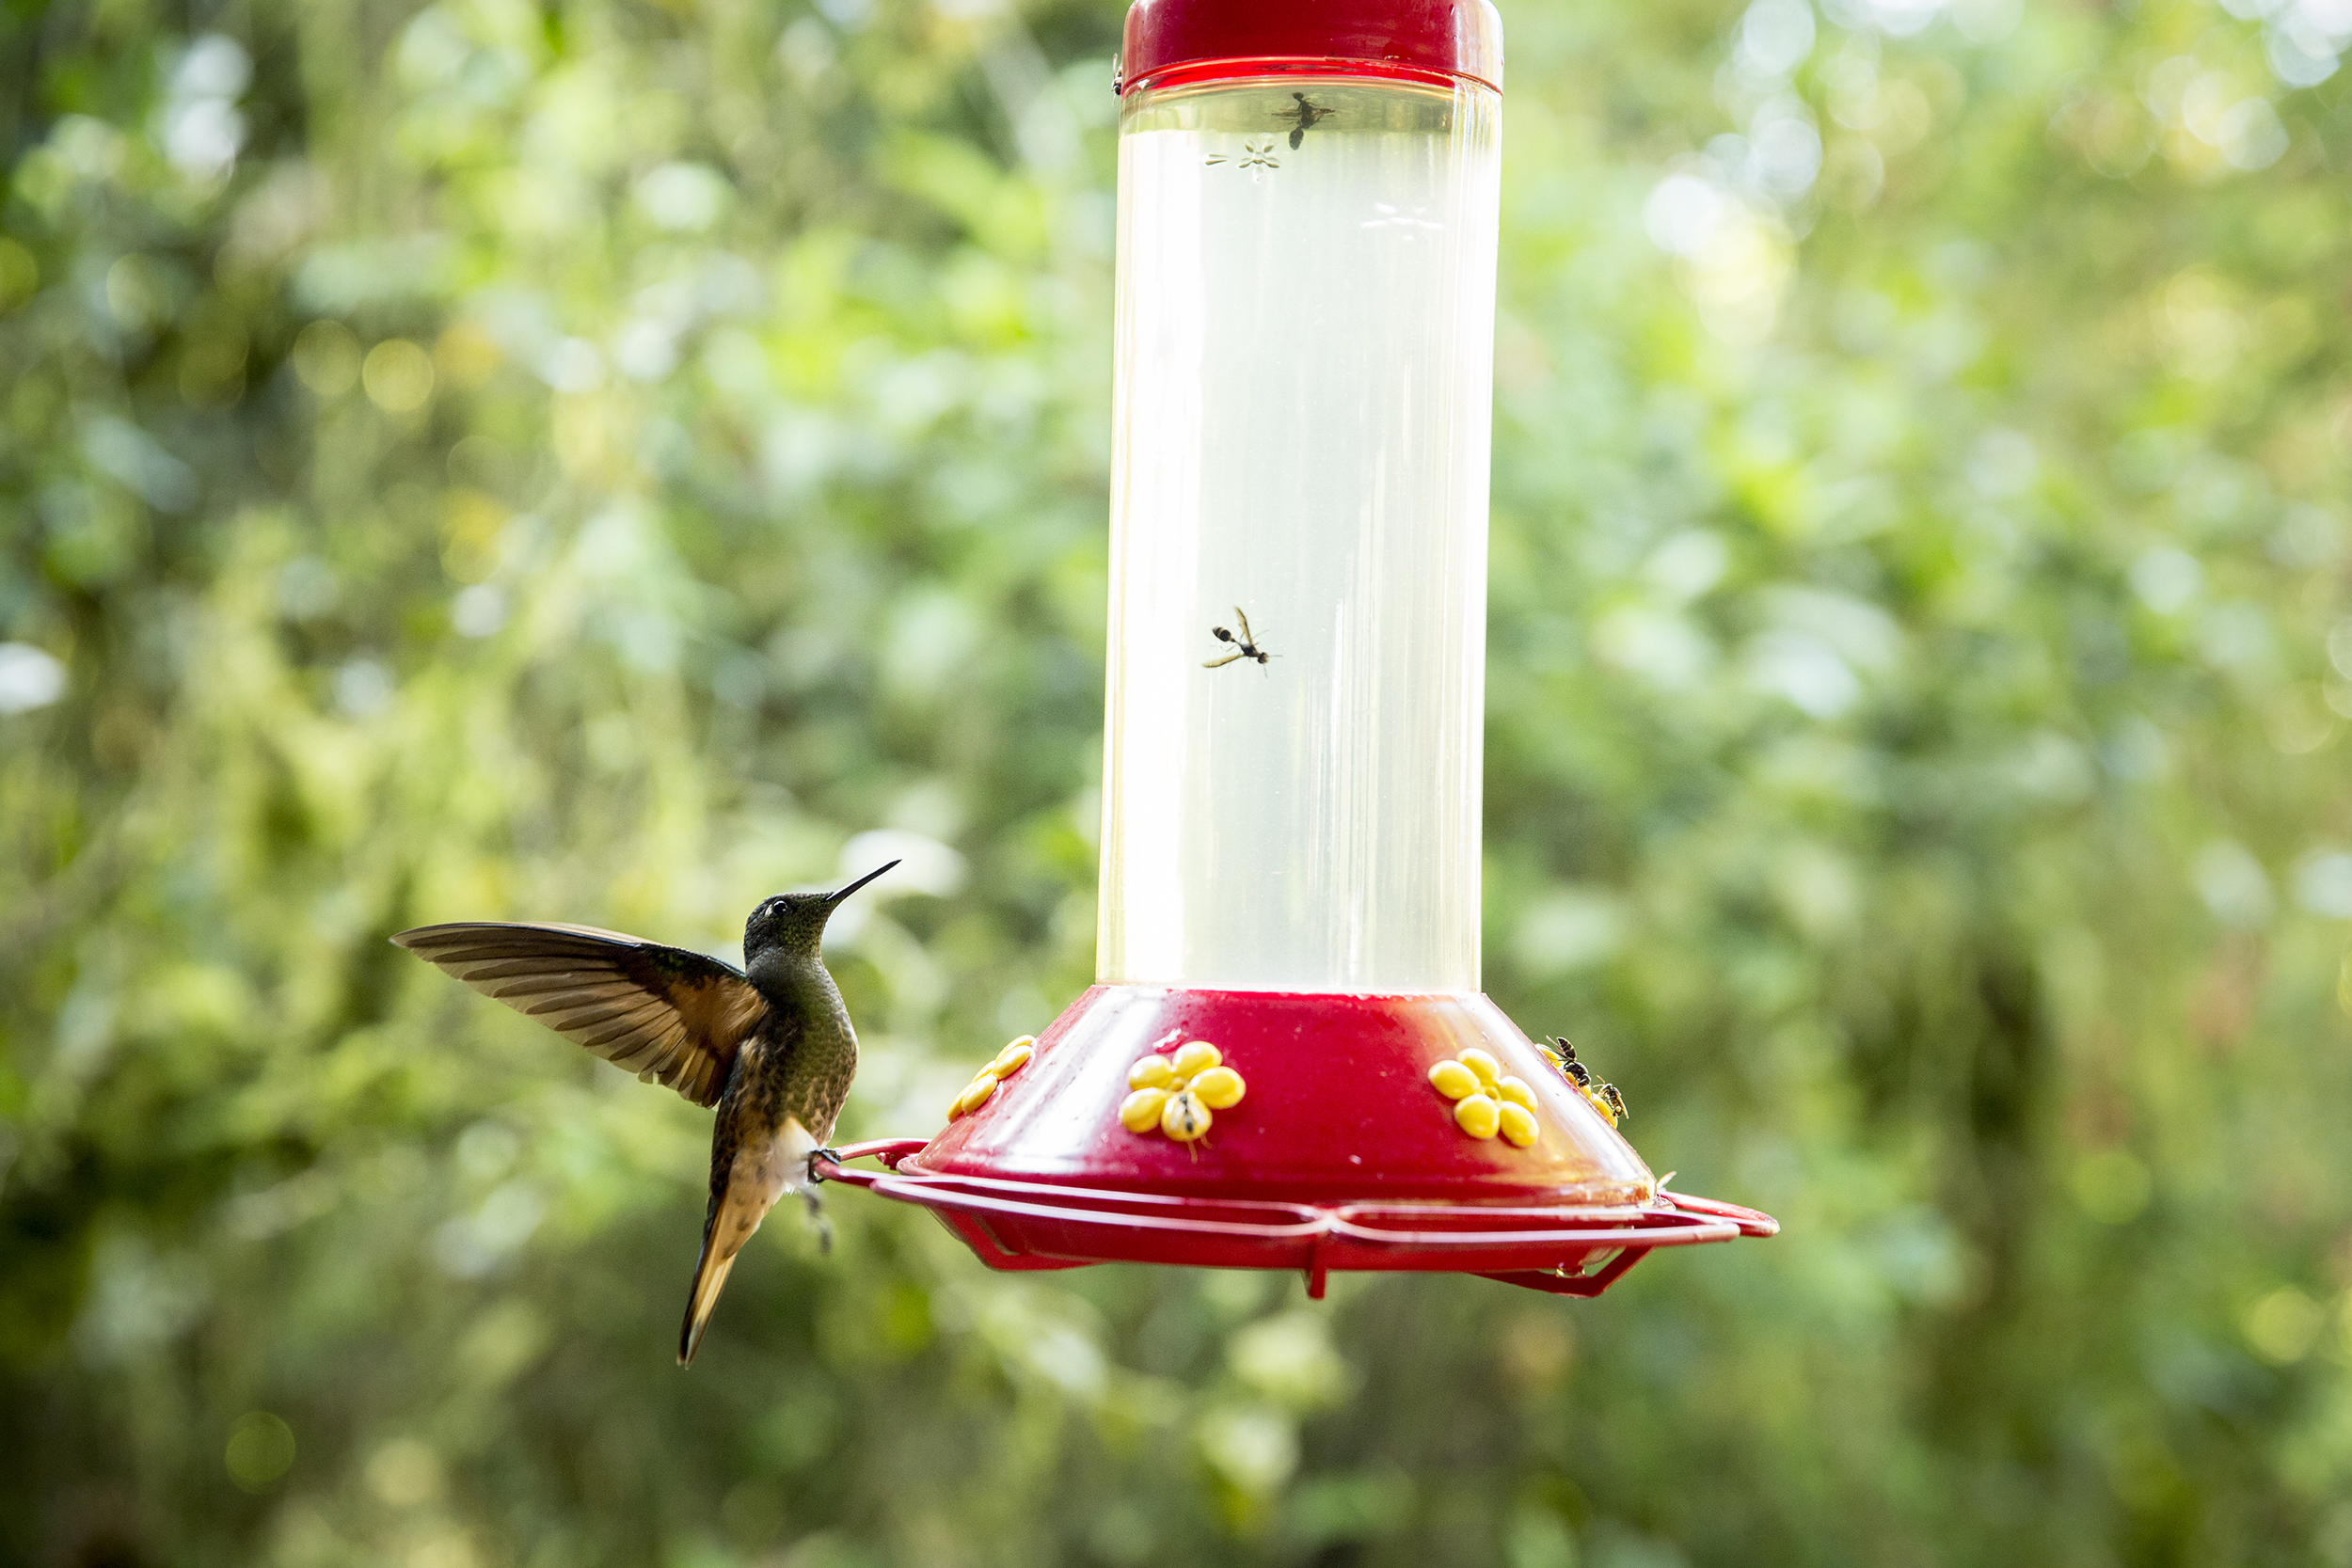 Thousands of hummingbirds in the Cloud Forest region